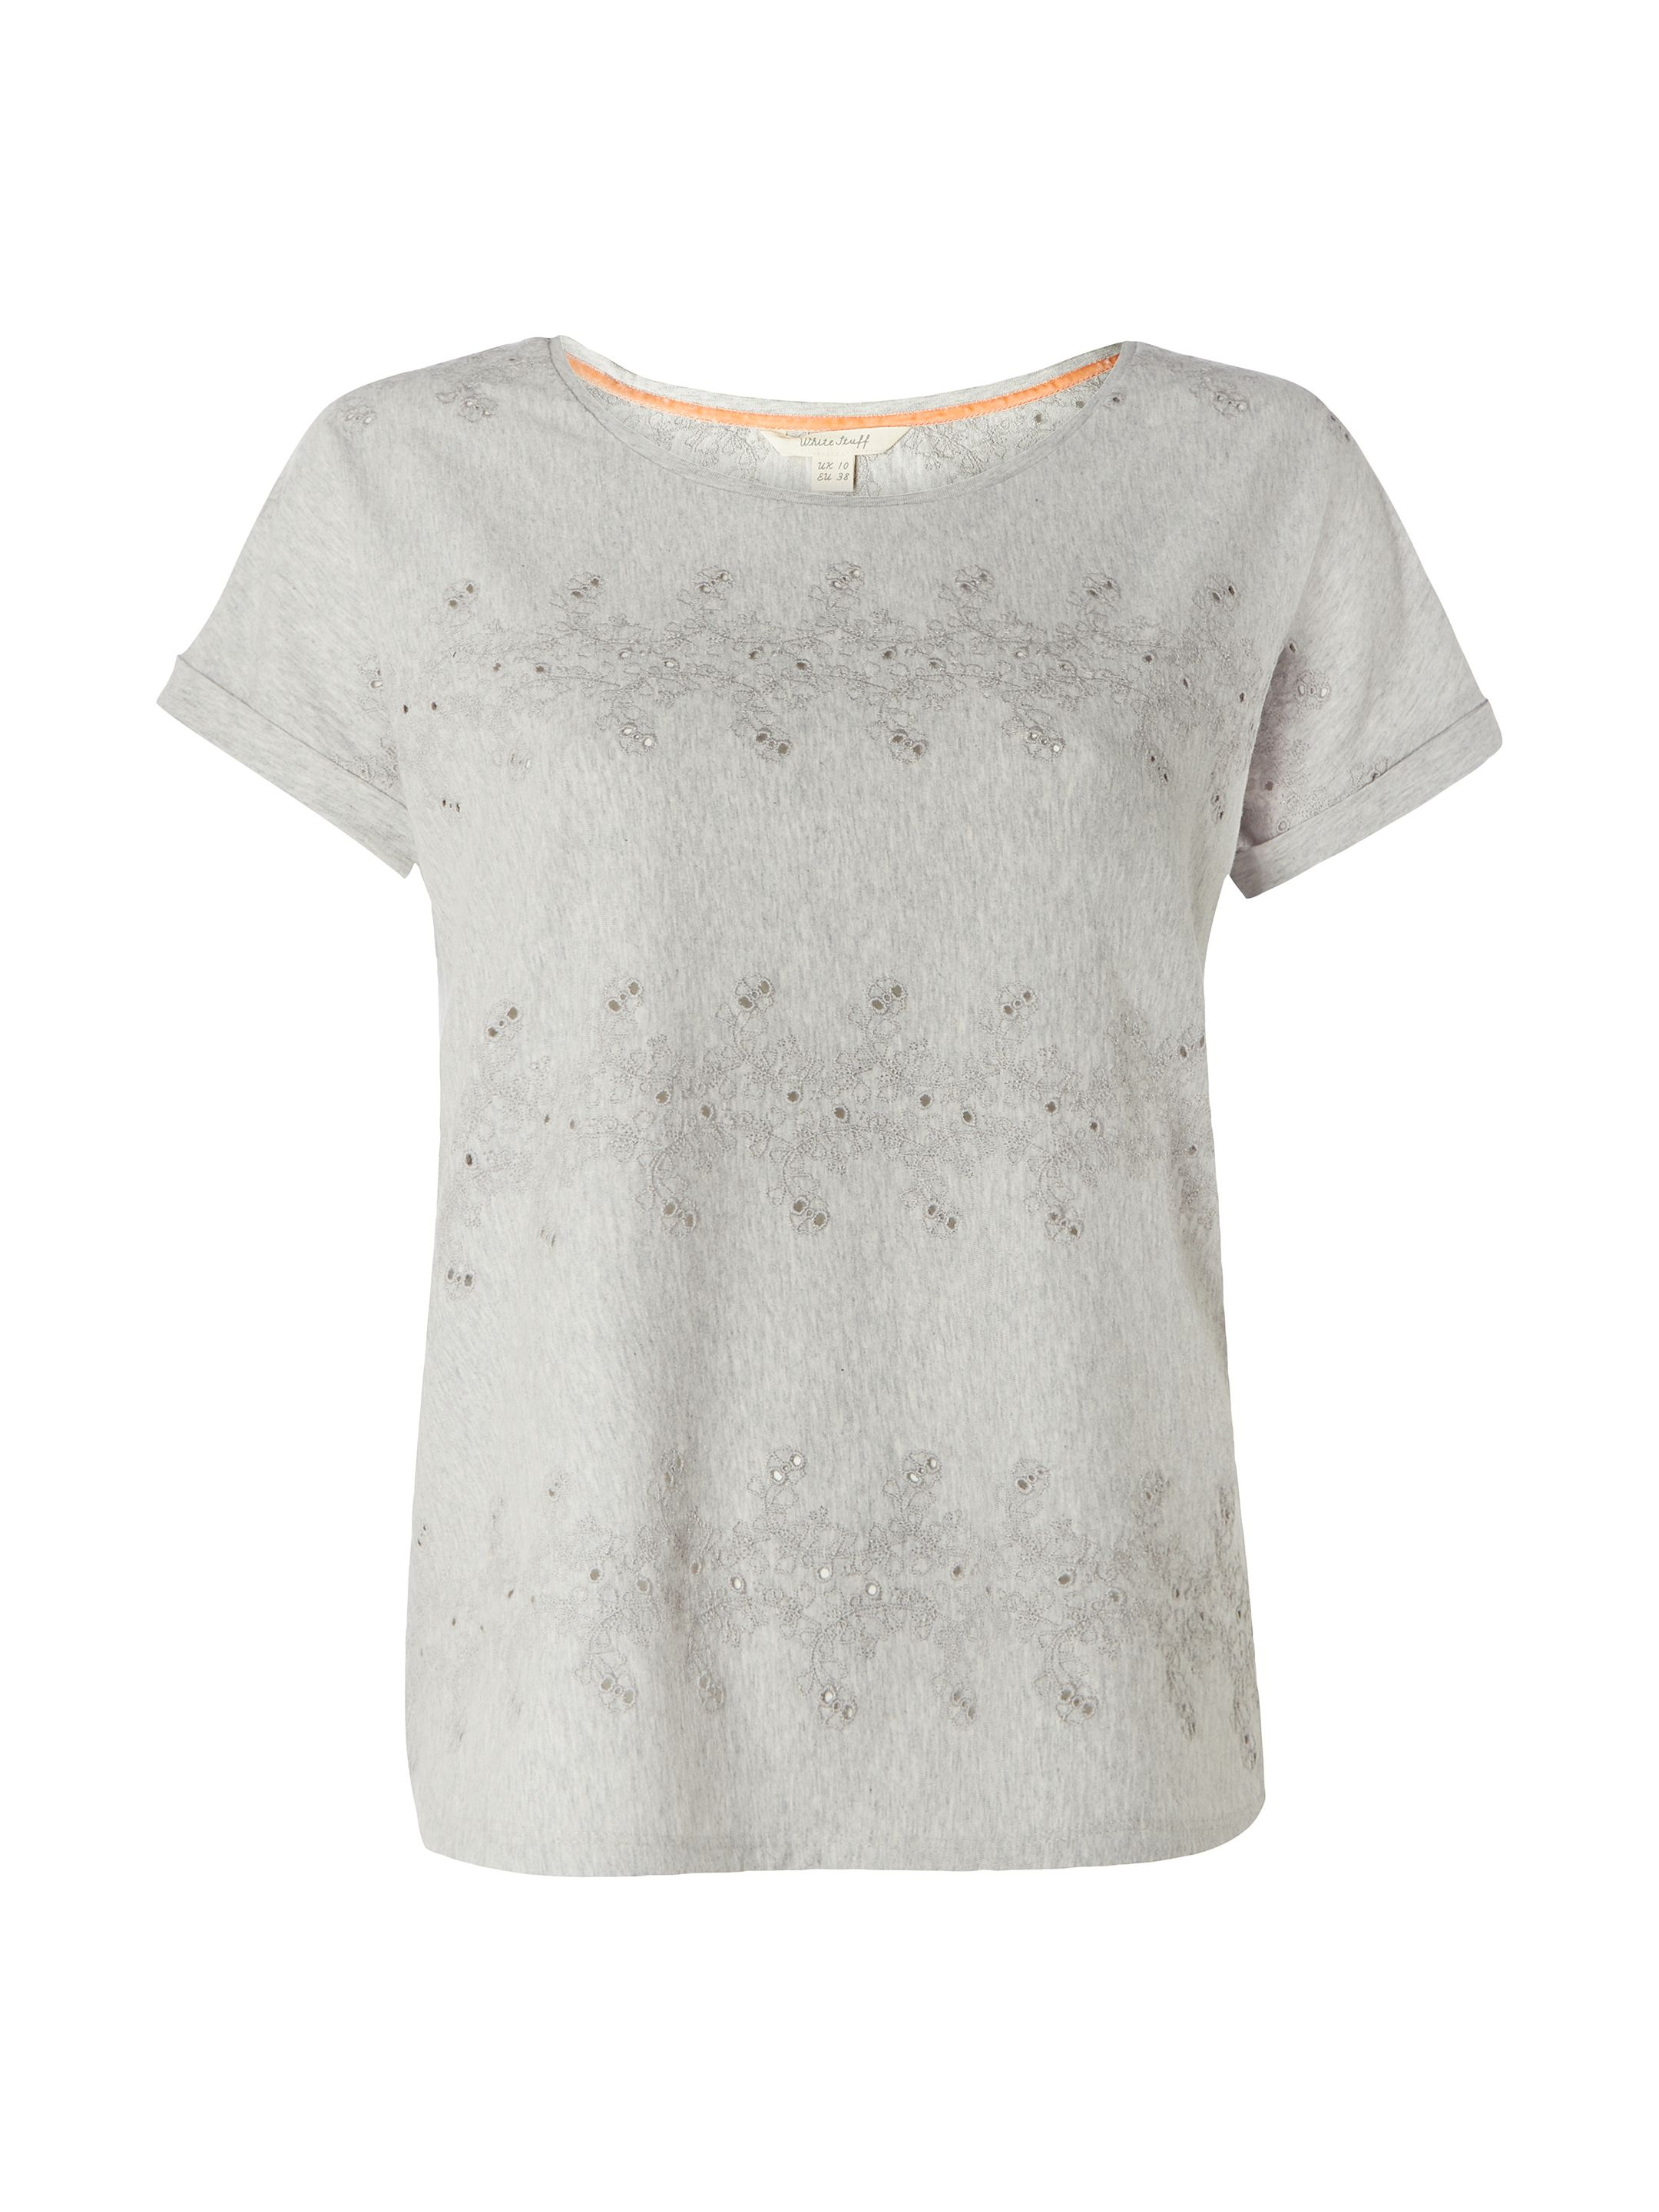 White Stuff Claire Emb Jersey Tee, Grey